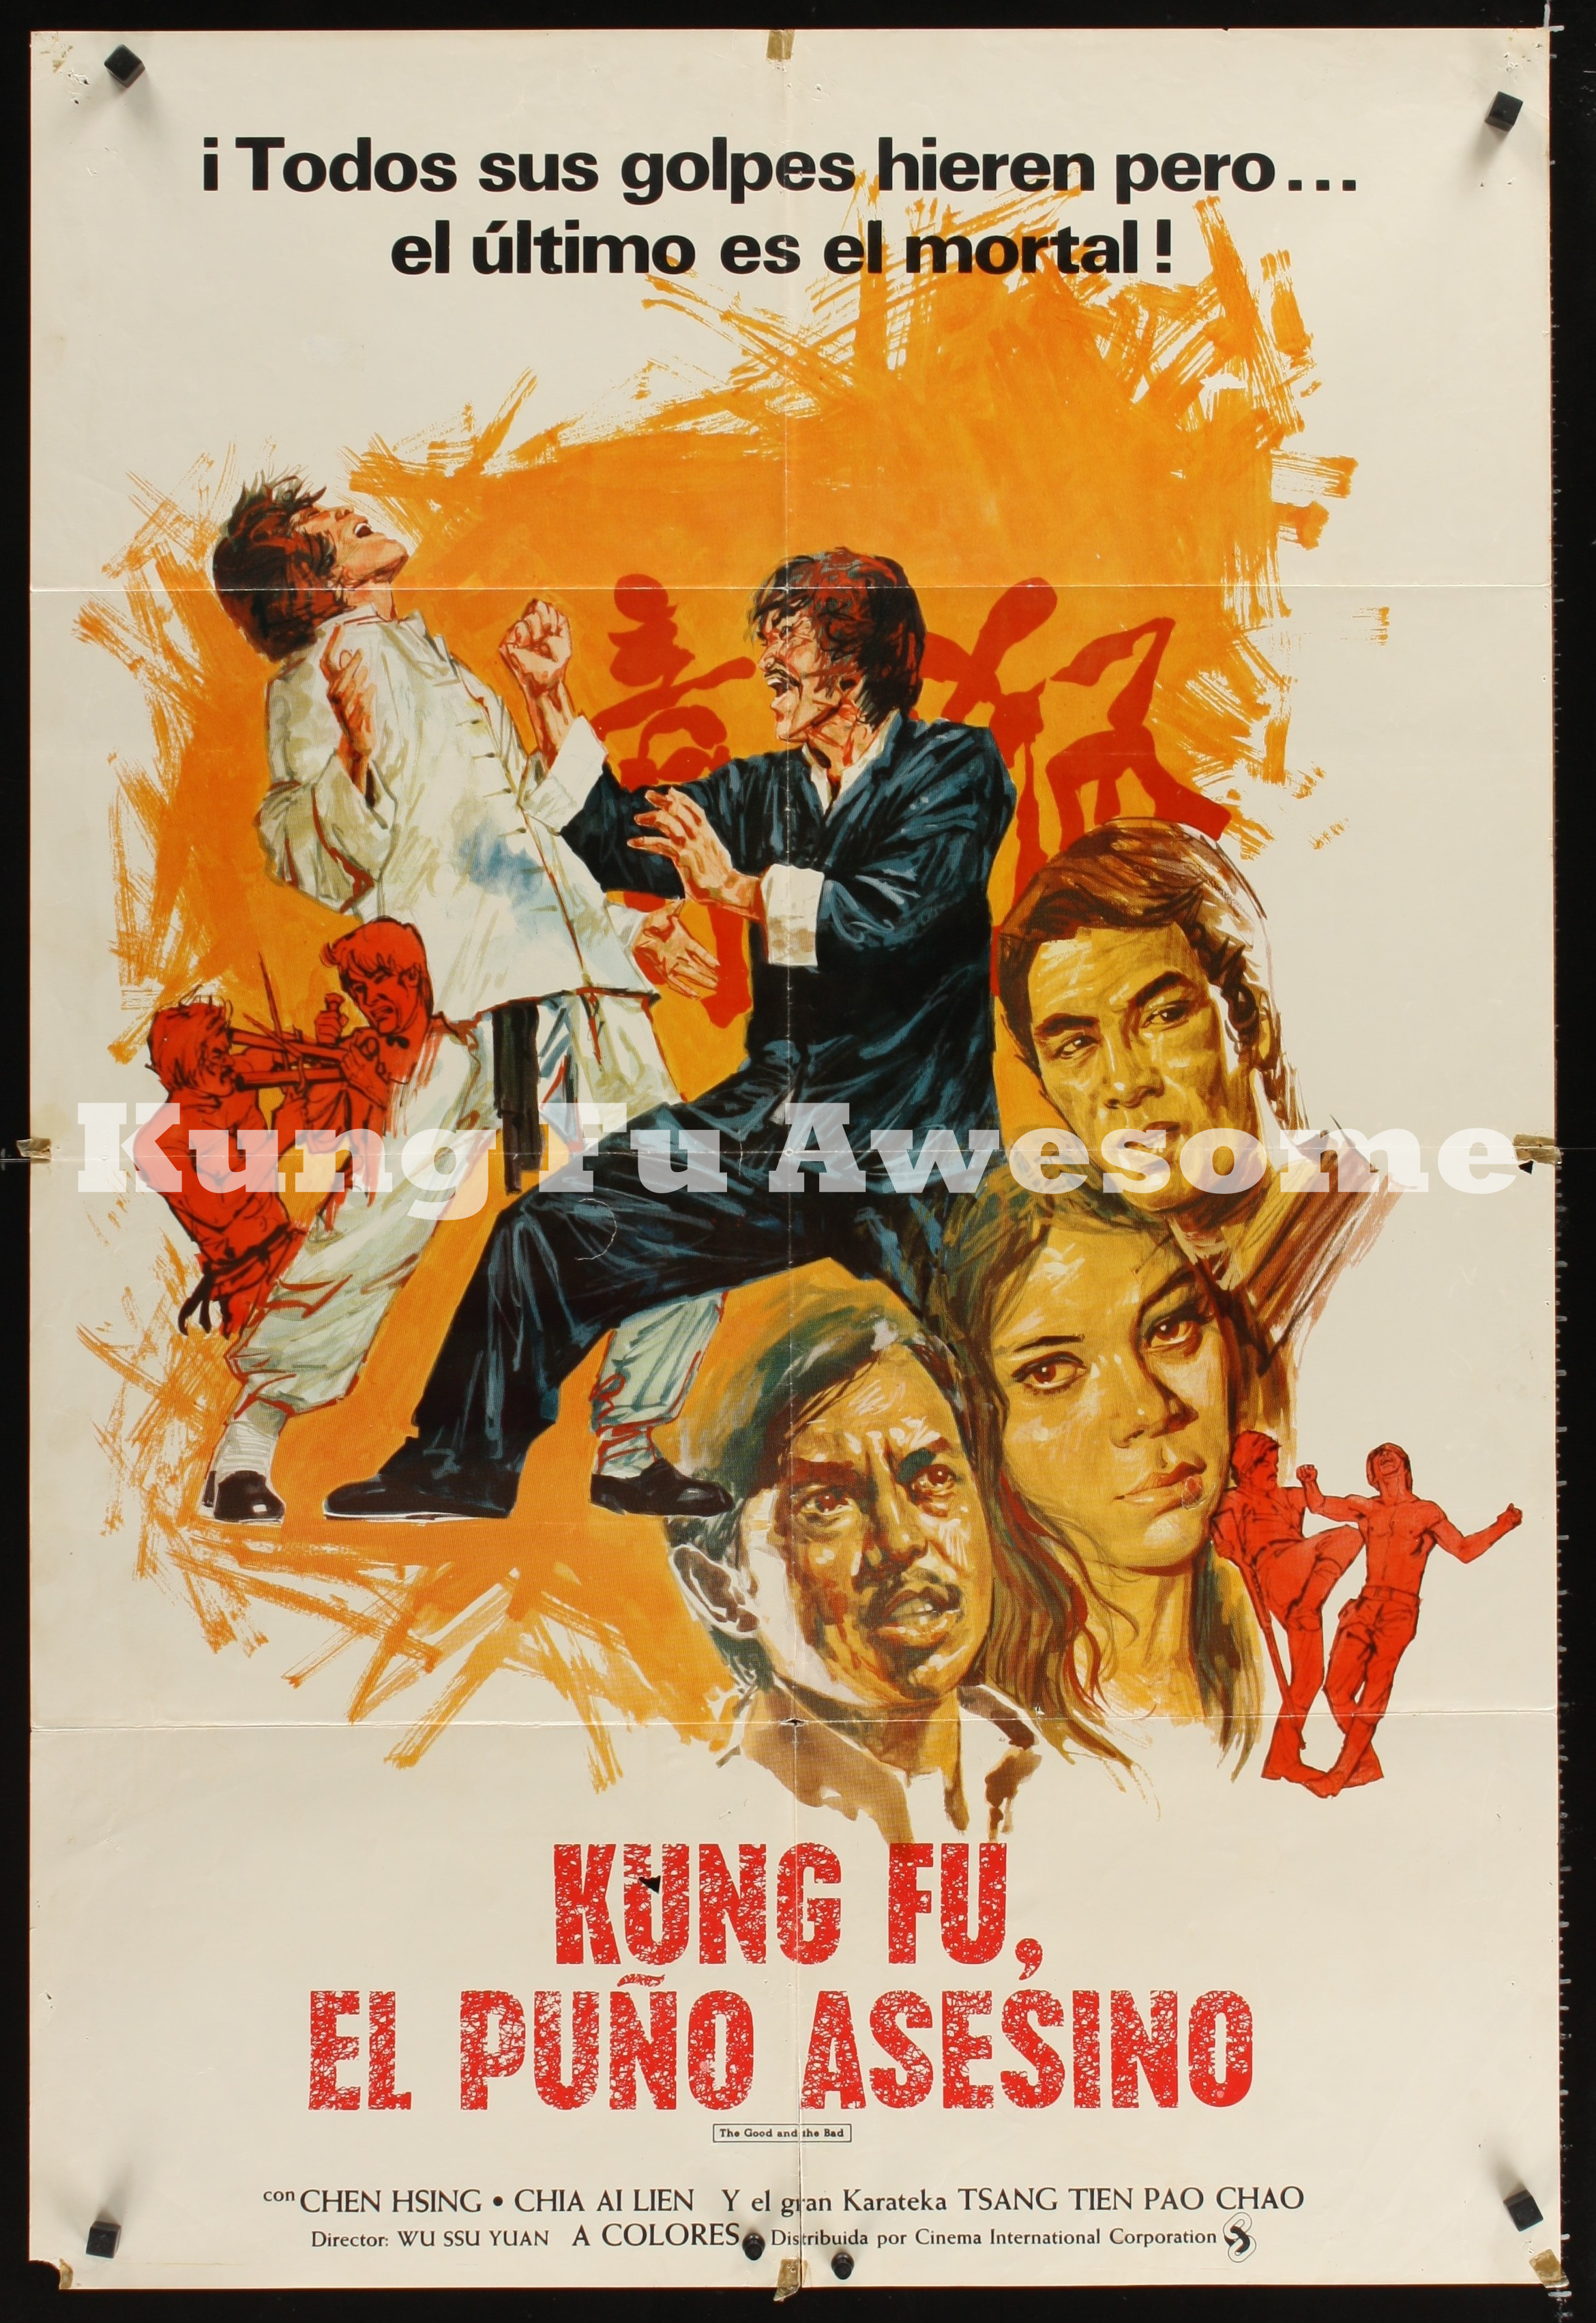 spanish_kung_fu_the_invincible_fist_retitled_JC04256_L.jpg